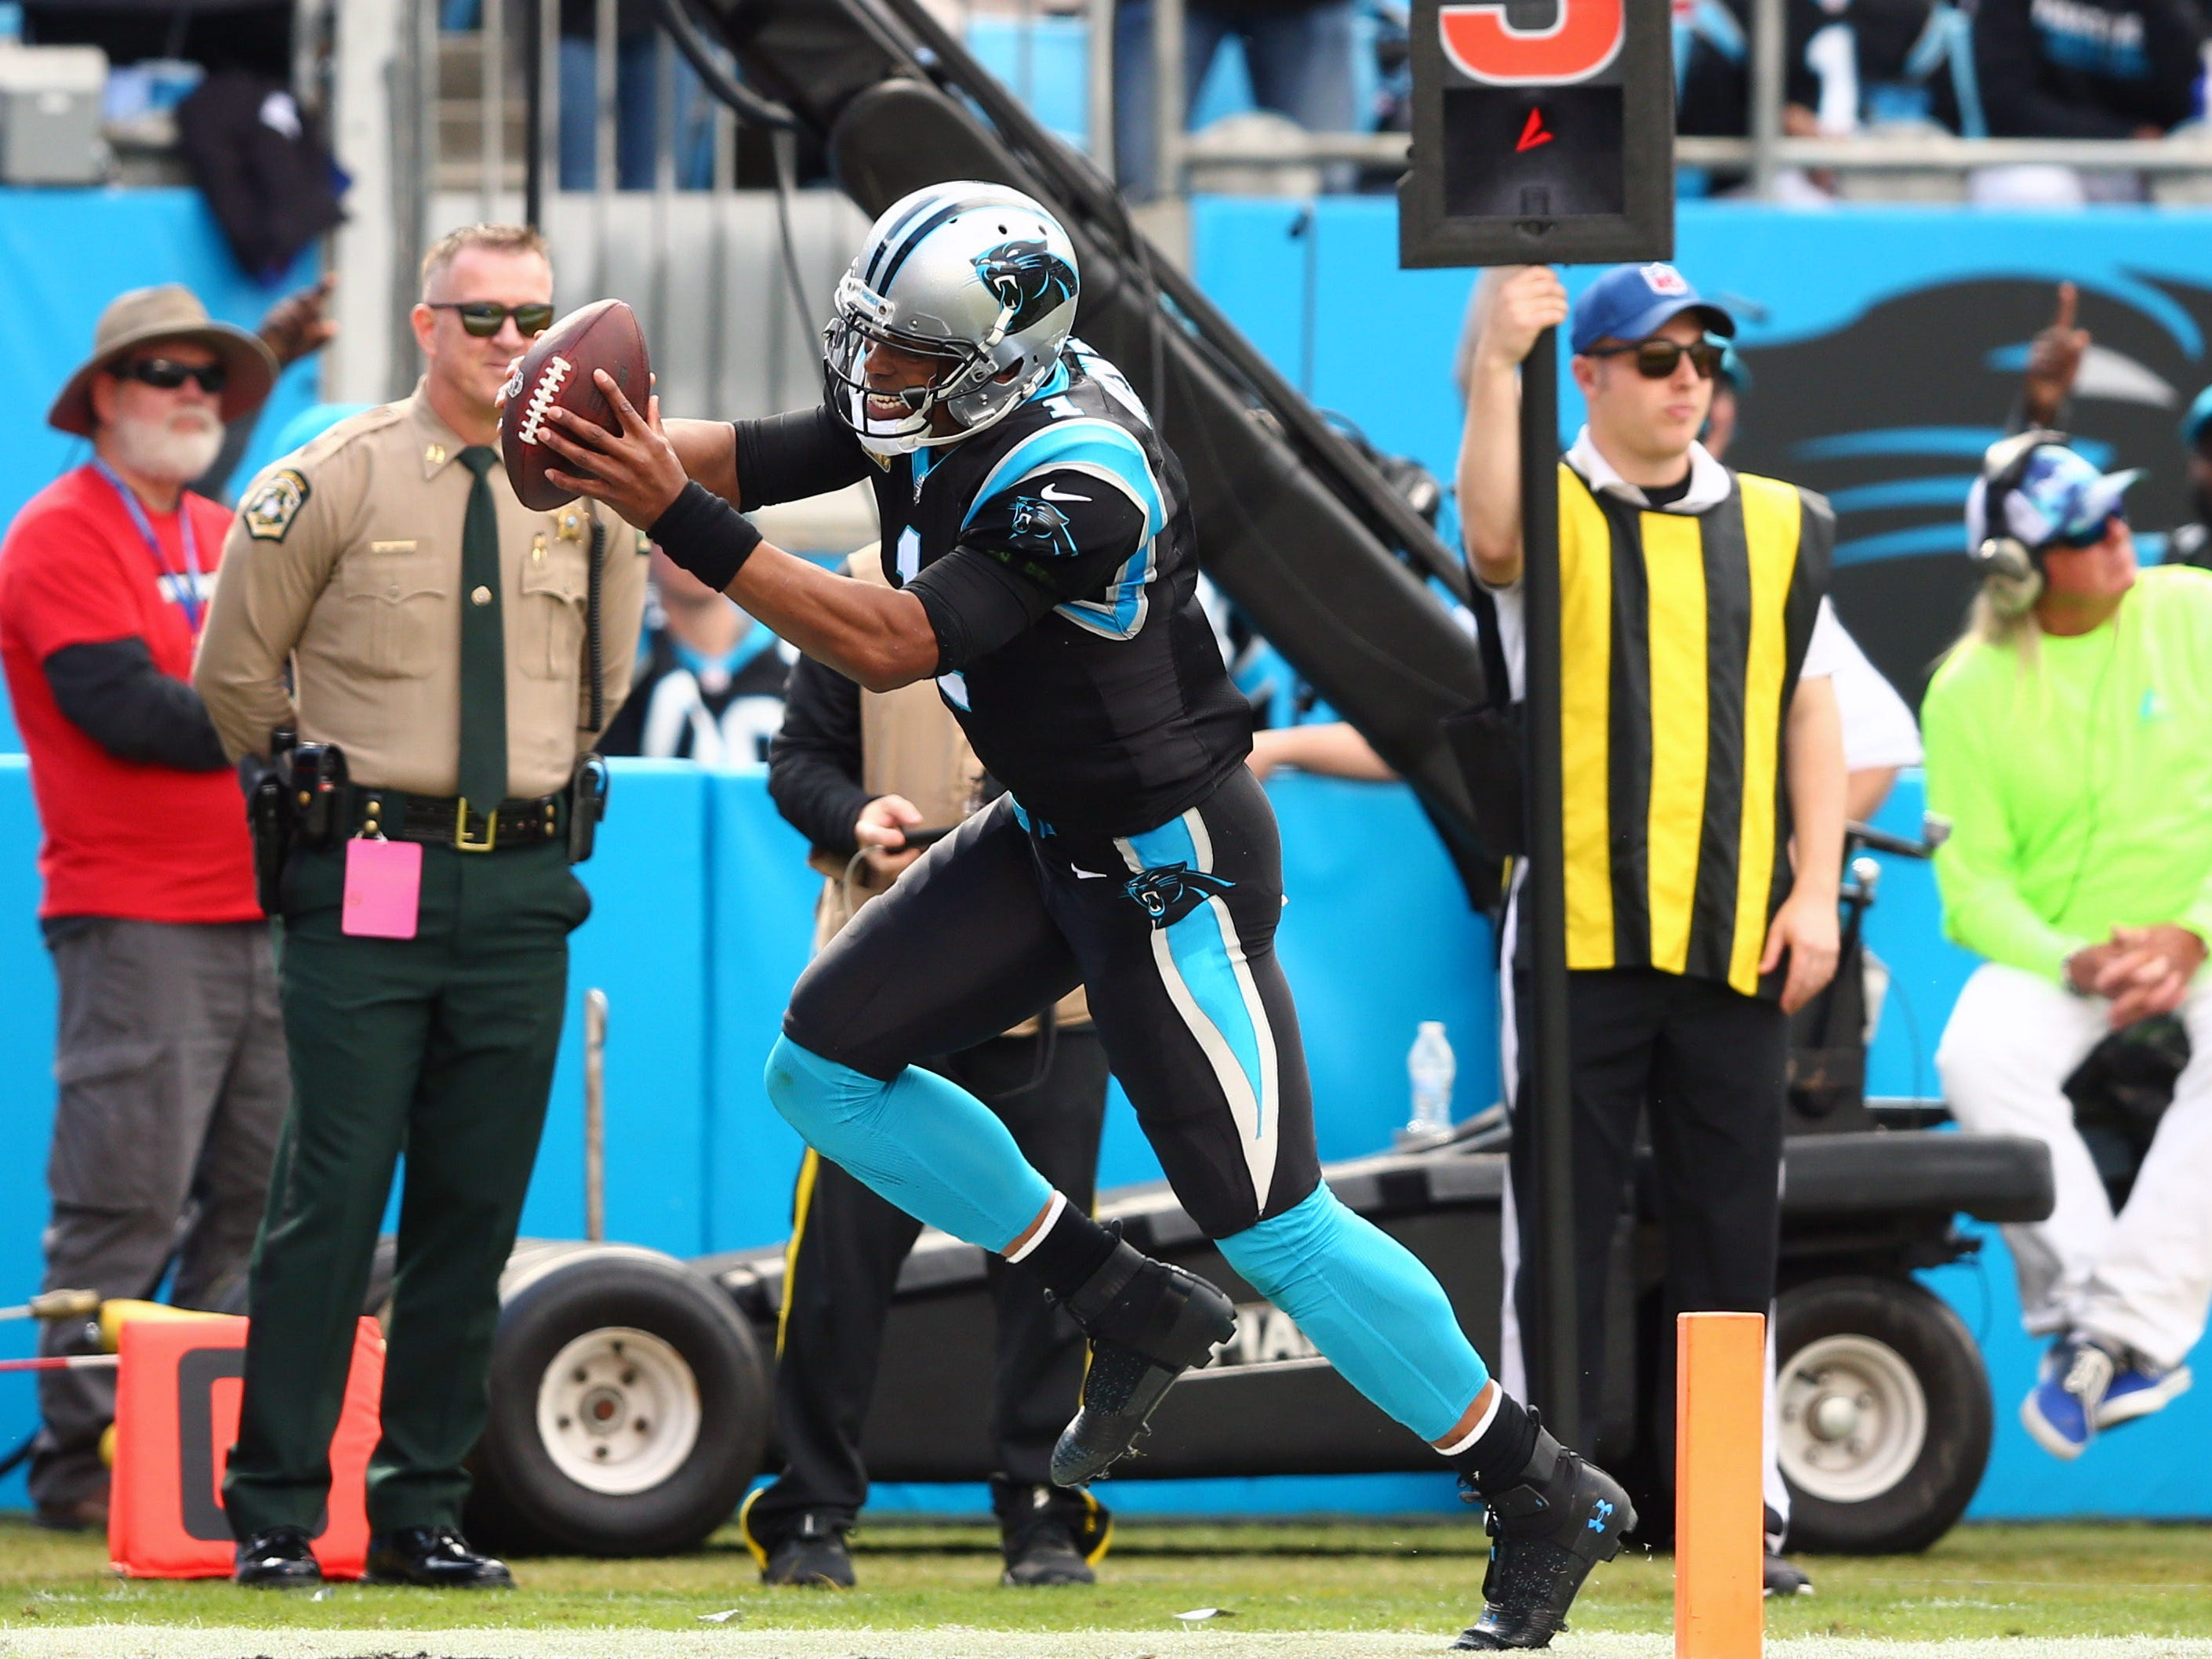 Carolina Panthers quarterback Cam Newton (1) celebrates a touchdown in the second quarter against the Tampa Bay Buccaneers at Bank of America Stadium.